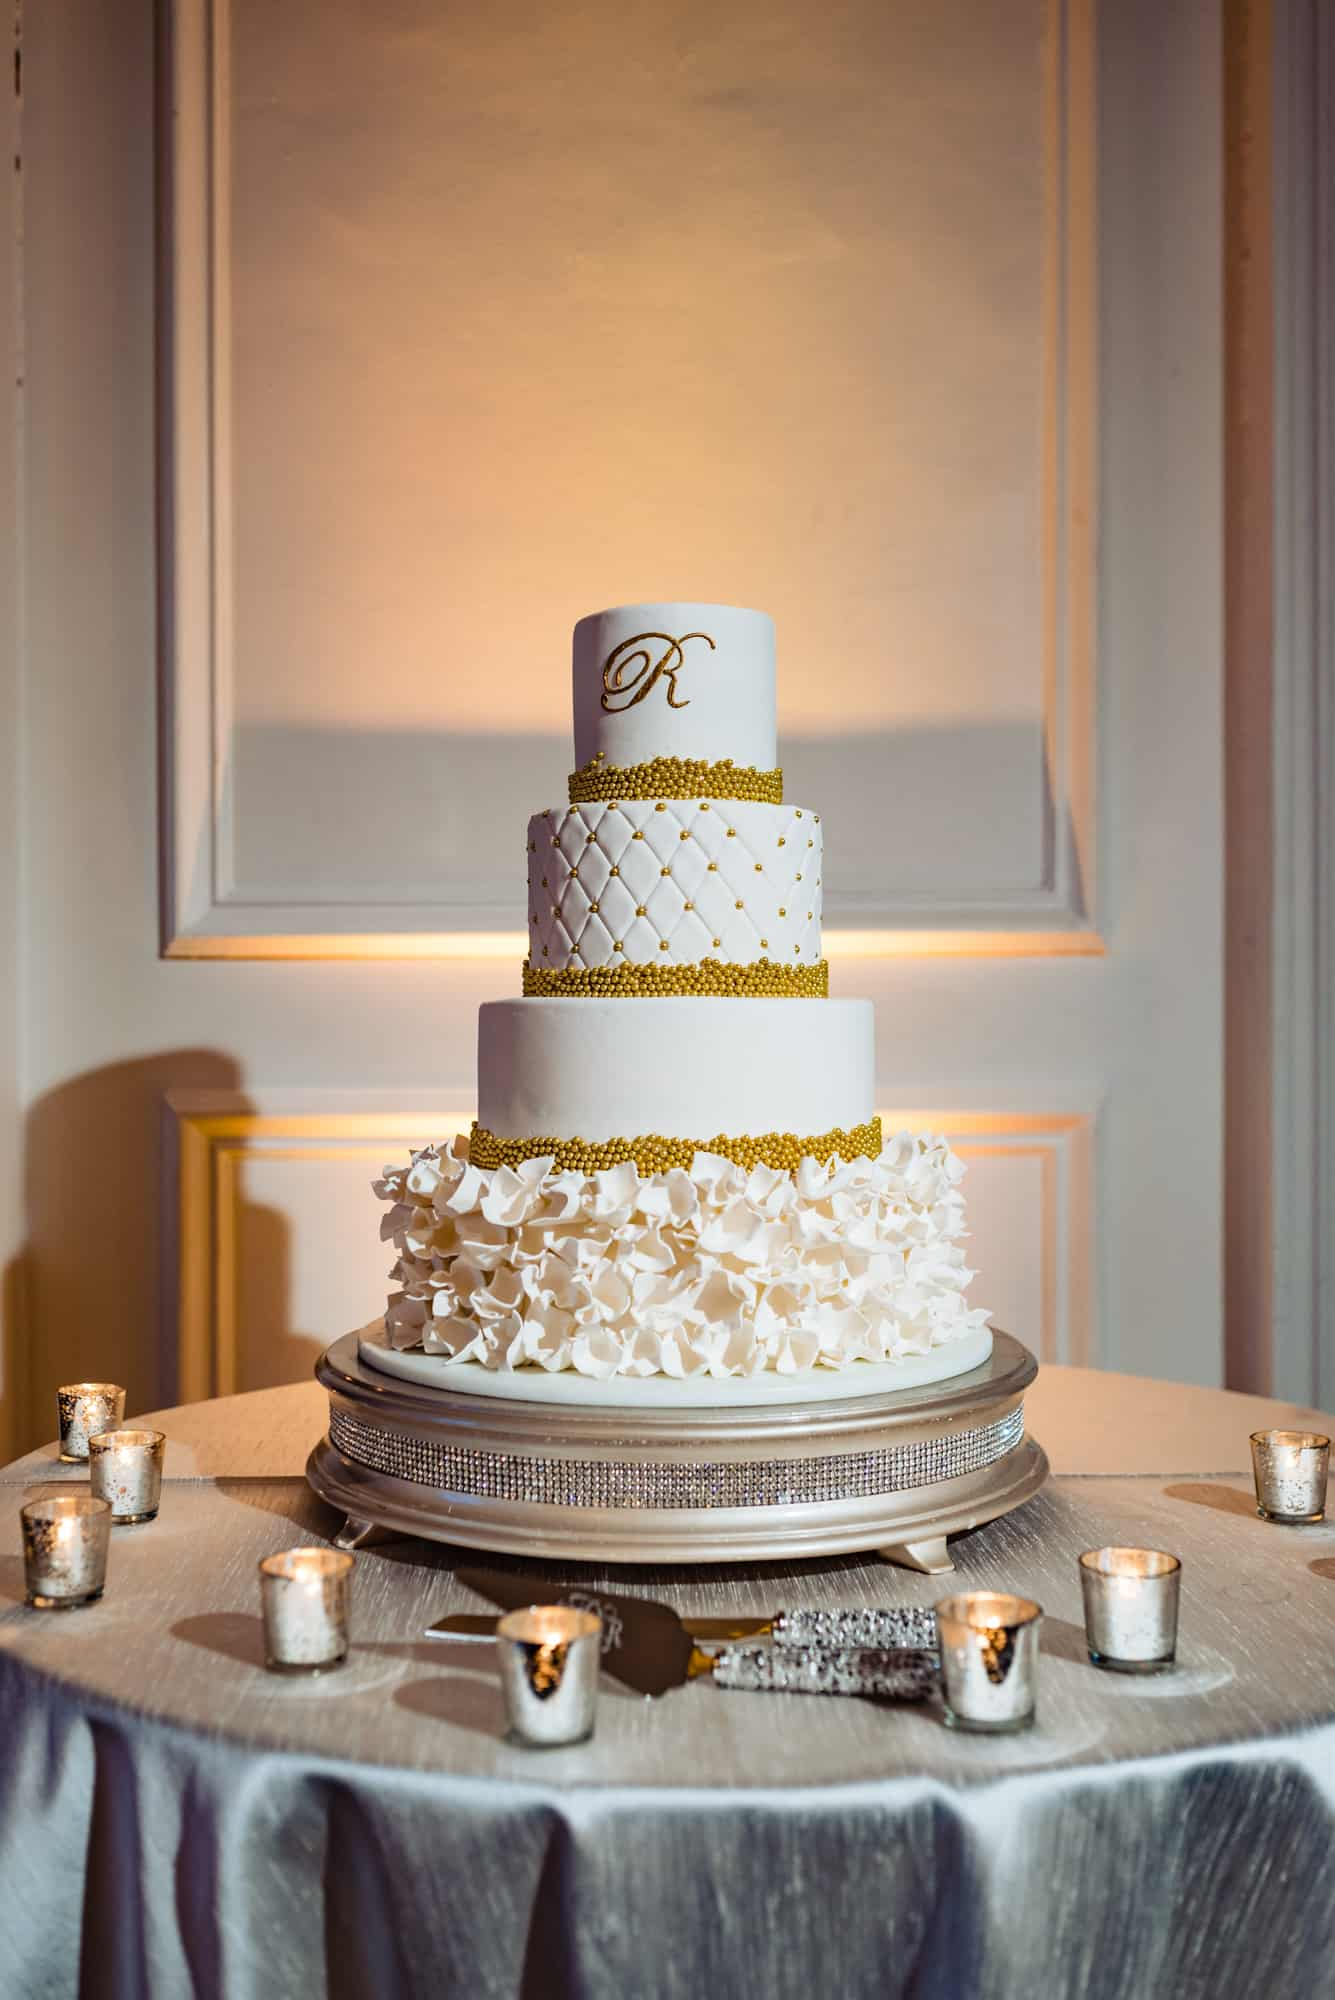 White wedding cake with gold trim